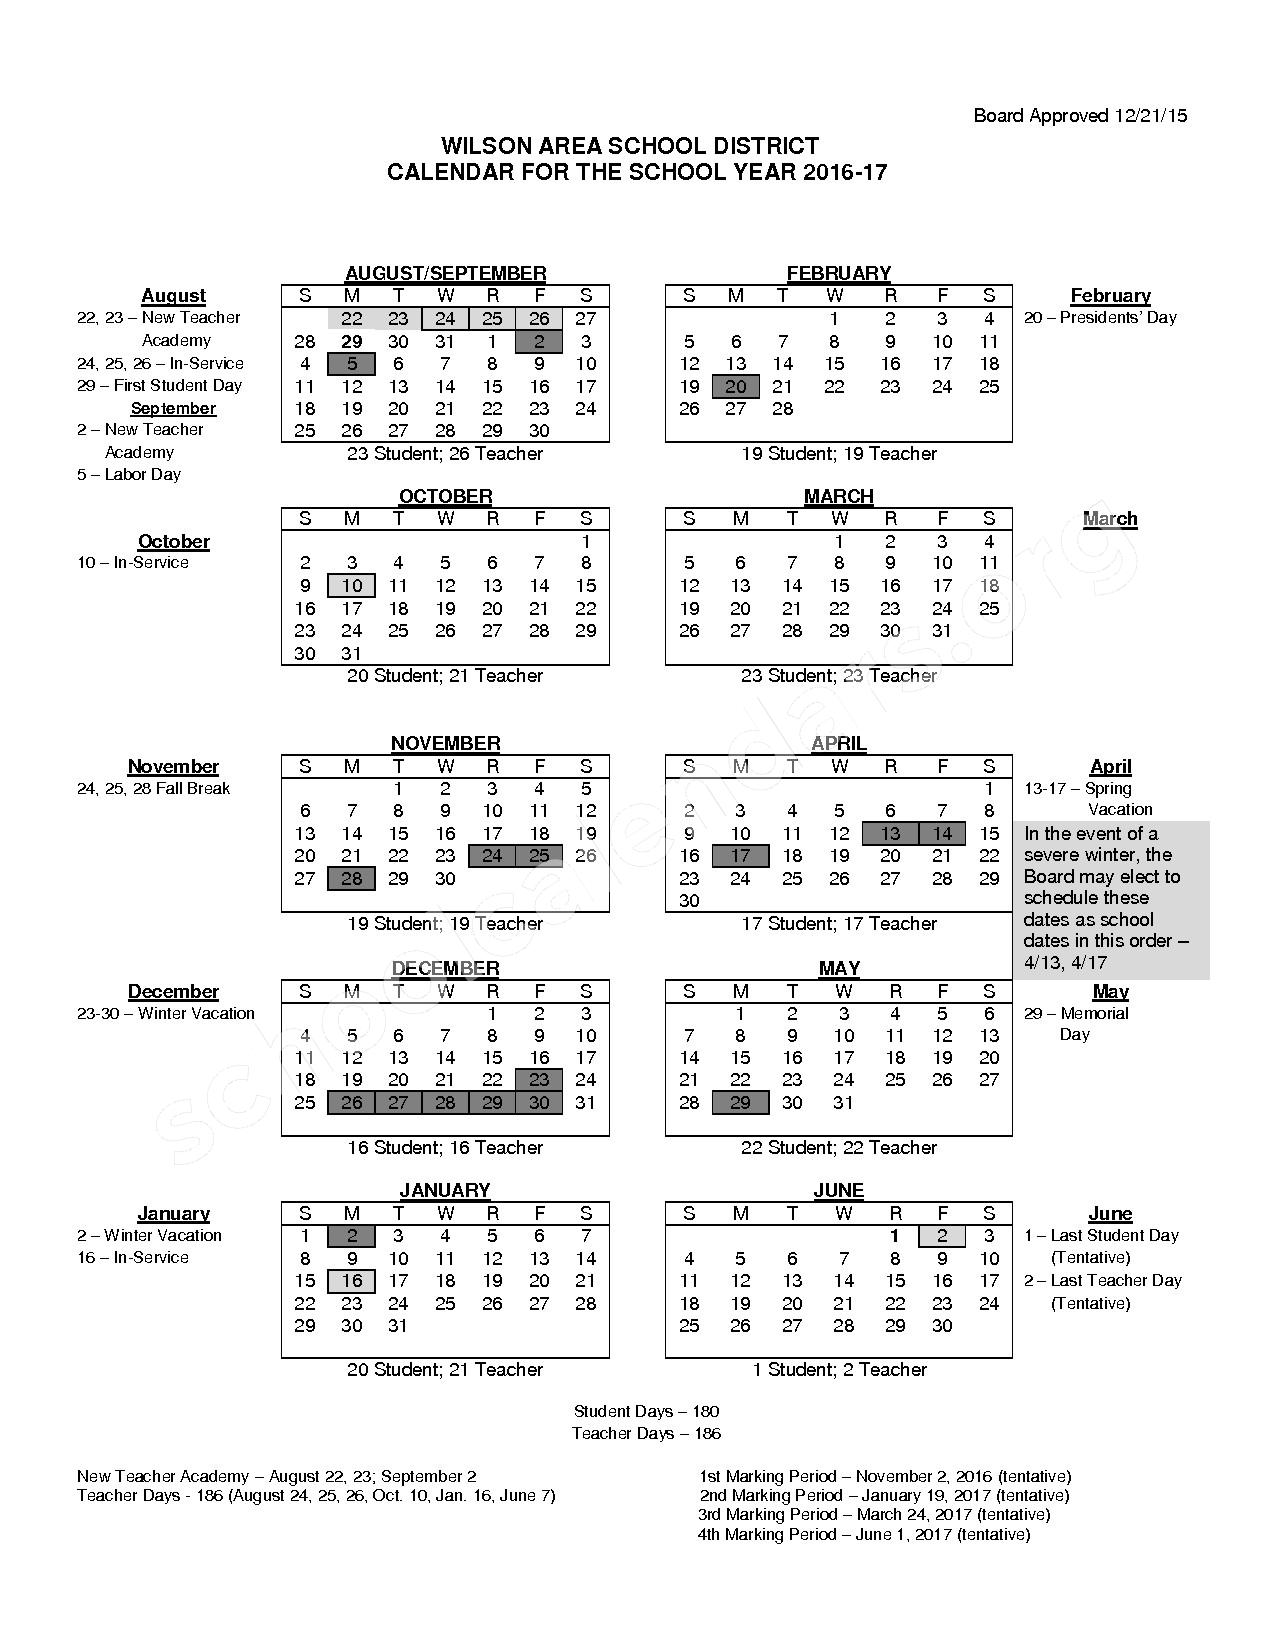 2016 - 2017 School Calendar – Wilson Area School District – page 1